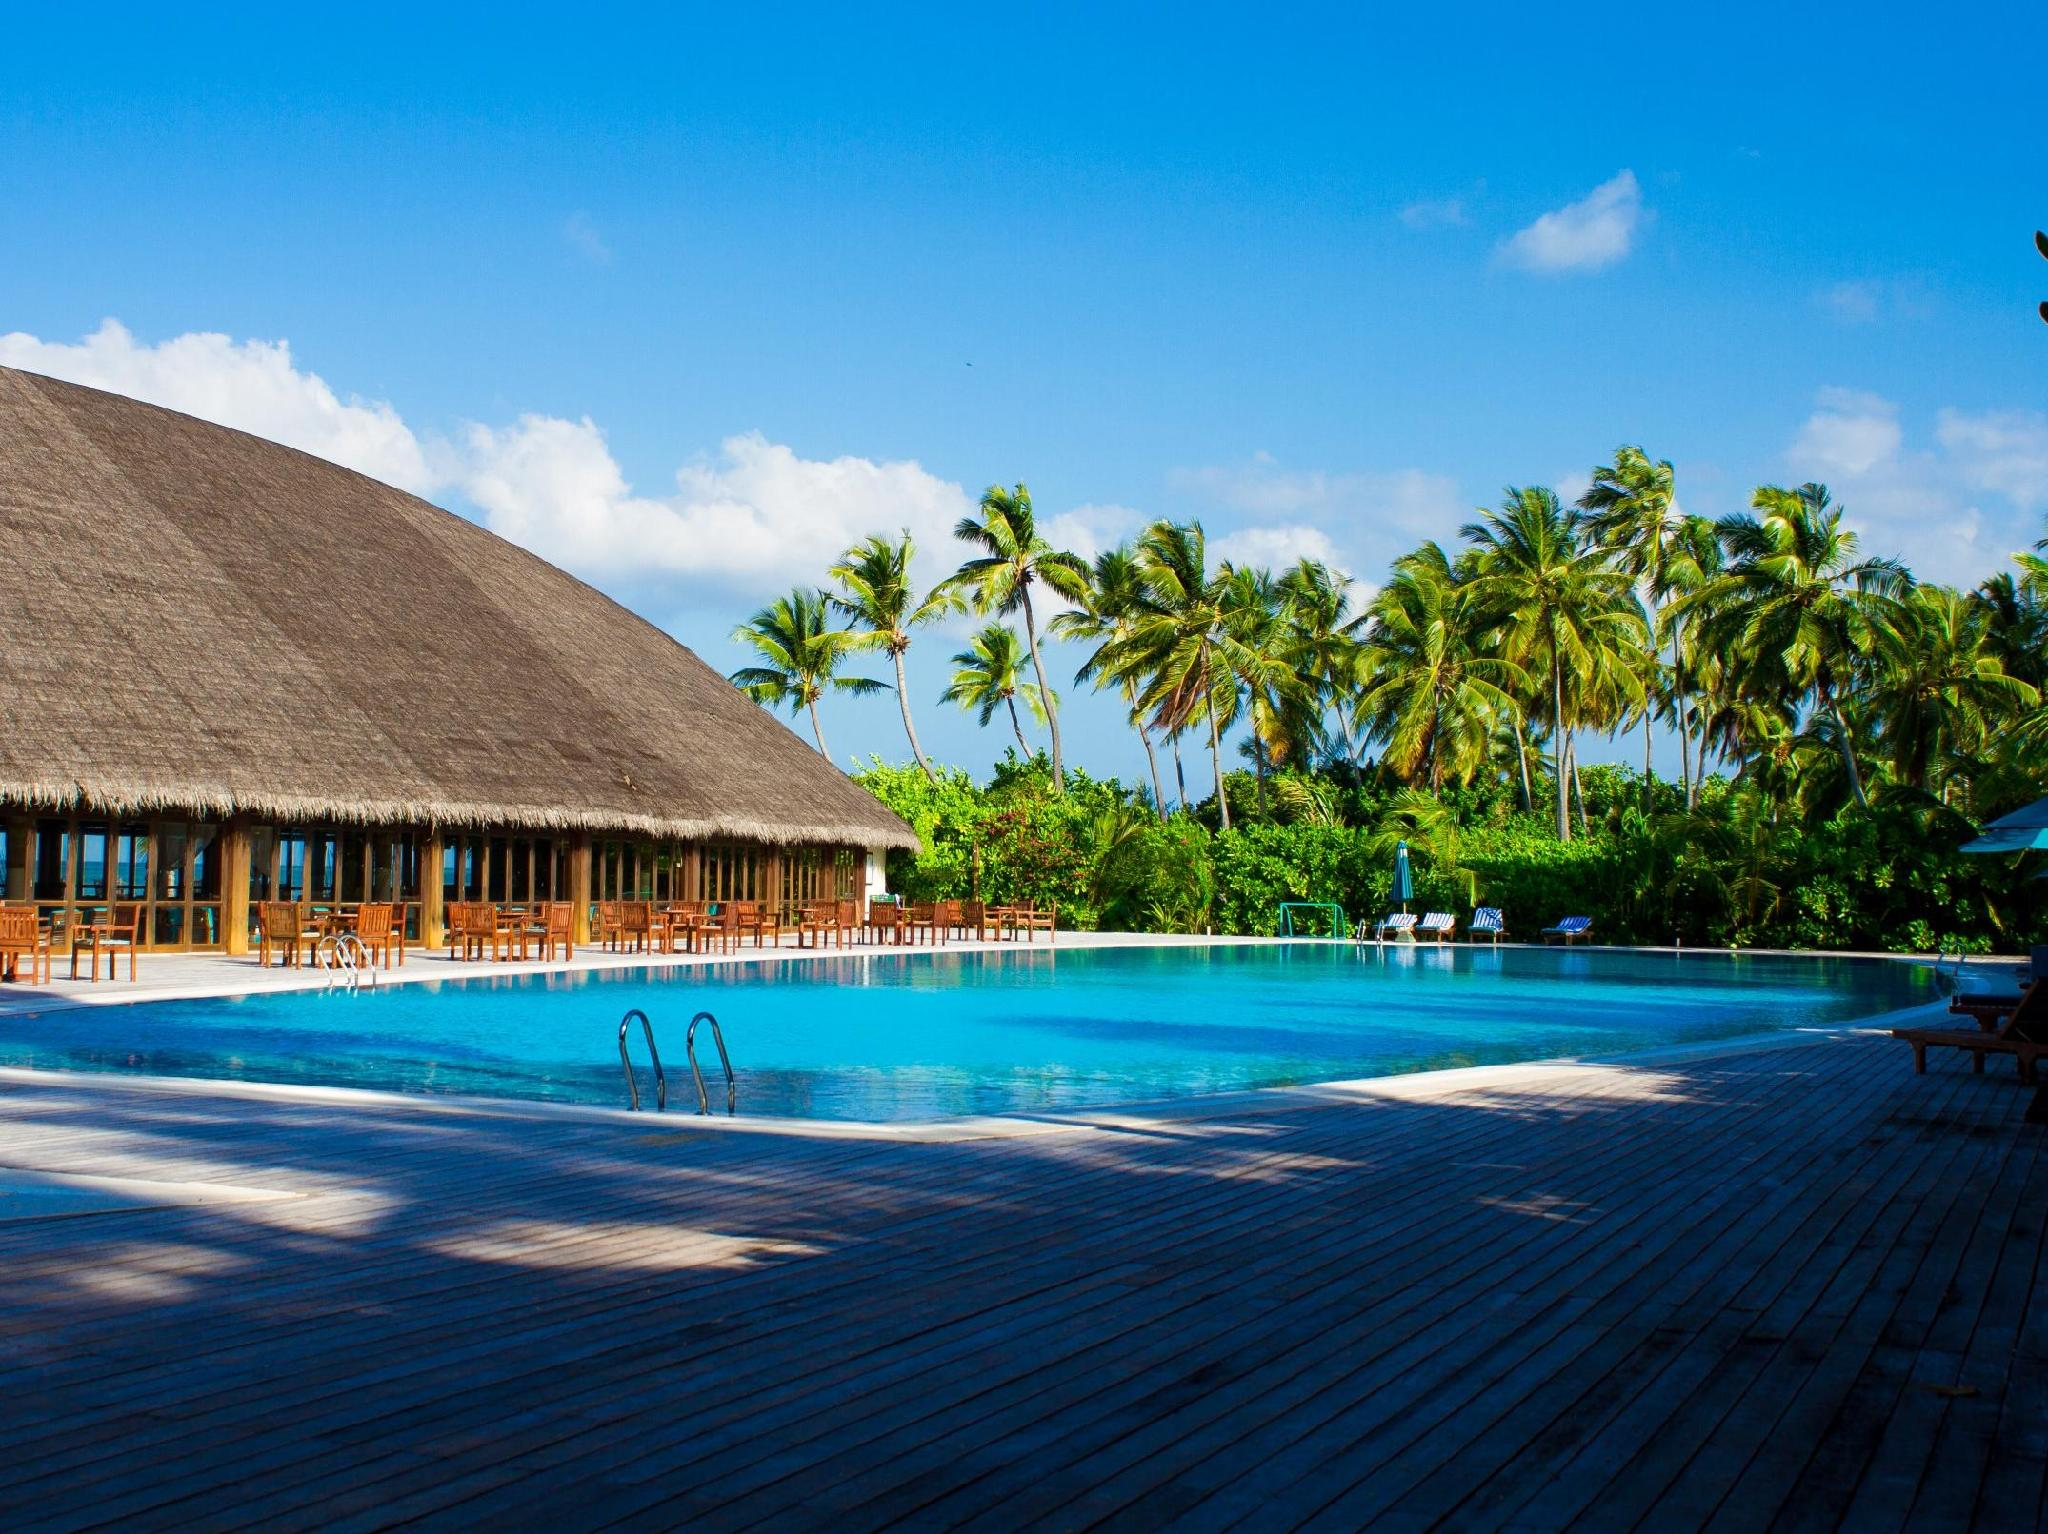 Herathera Island Resort Maldives Islands